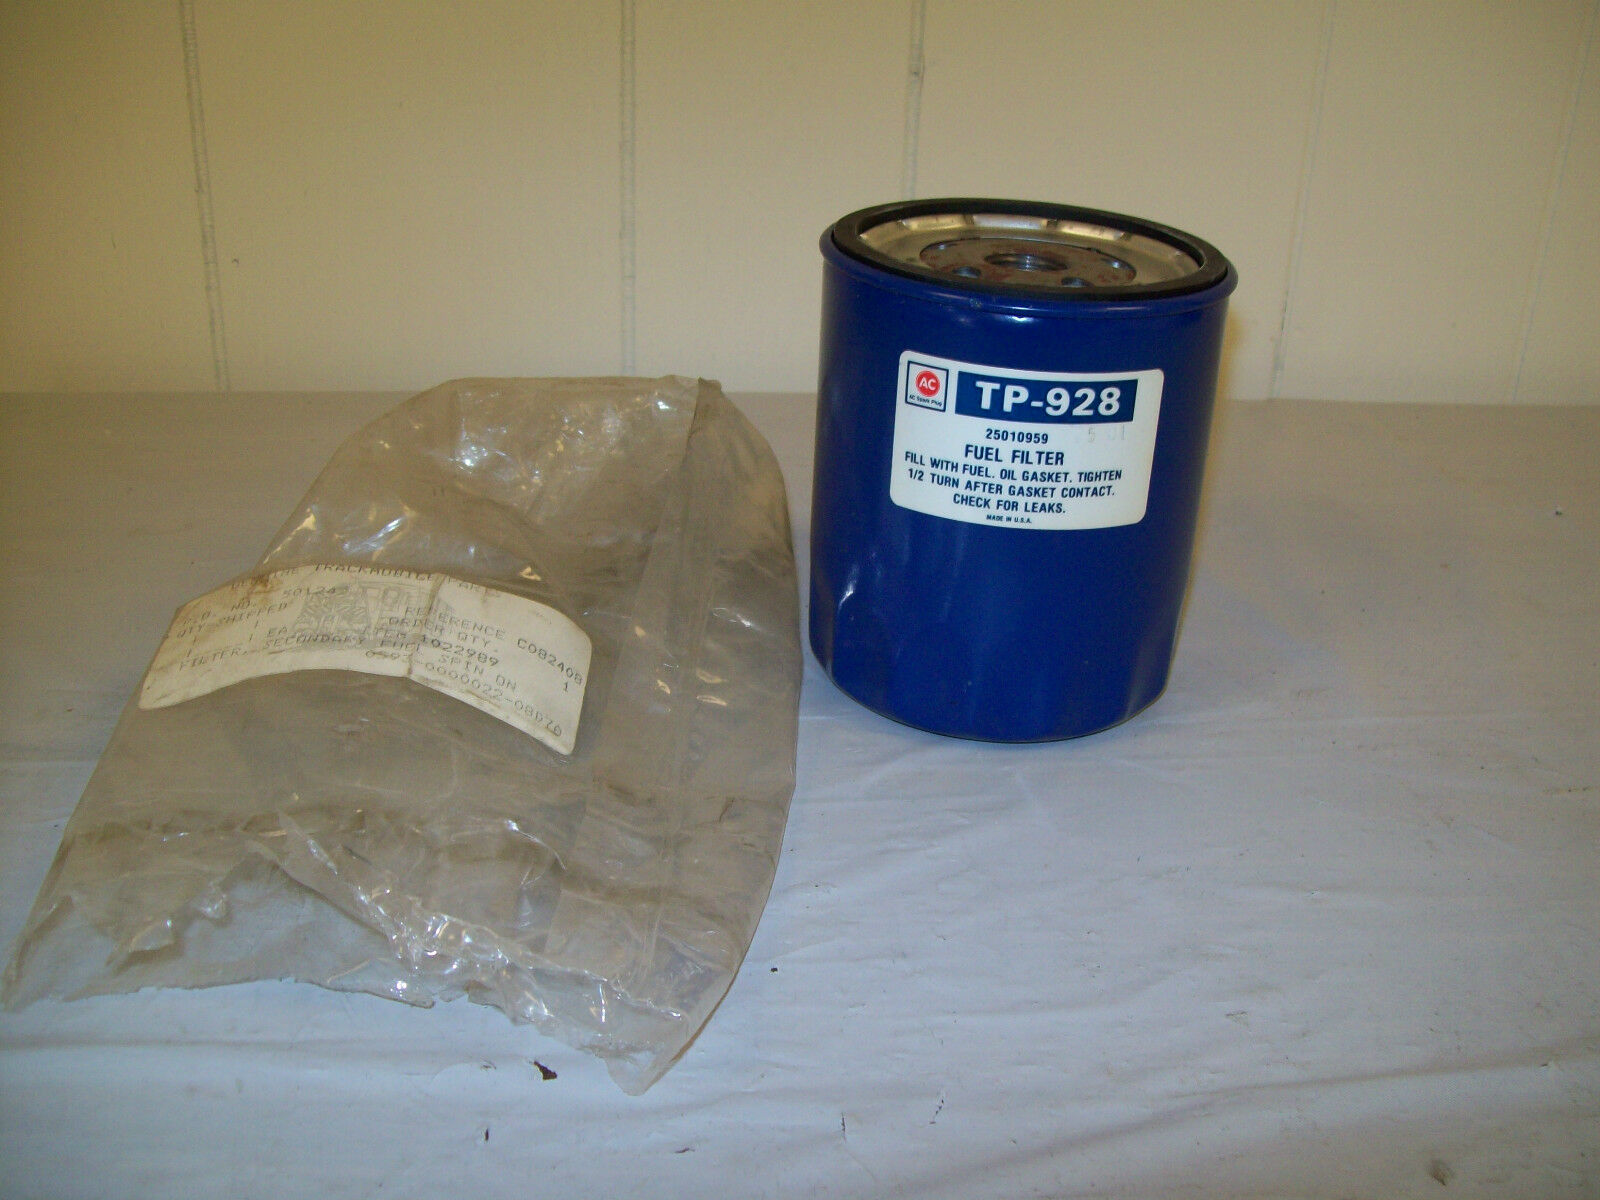 Ac Fuel Filter Tp 928 928f 25010959 Wix 33122 Ebay Wrap Norton Secured Powered By Verisign